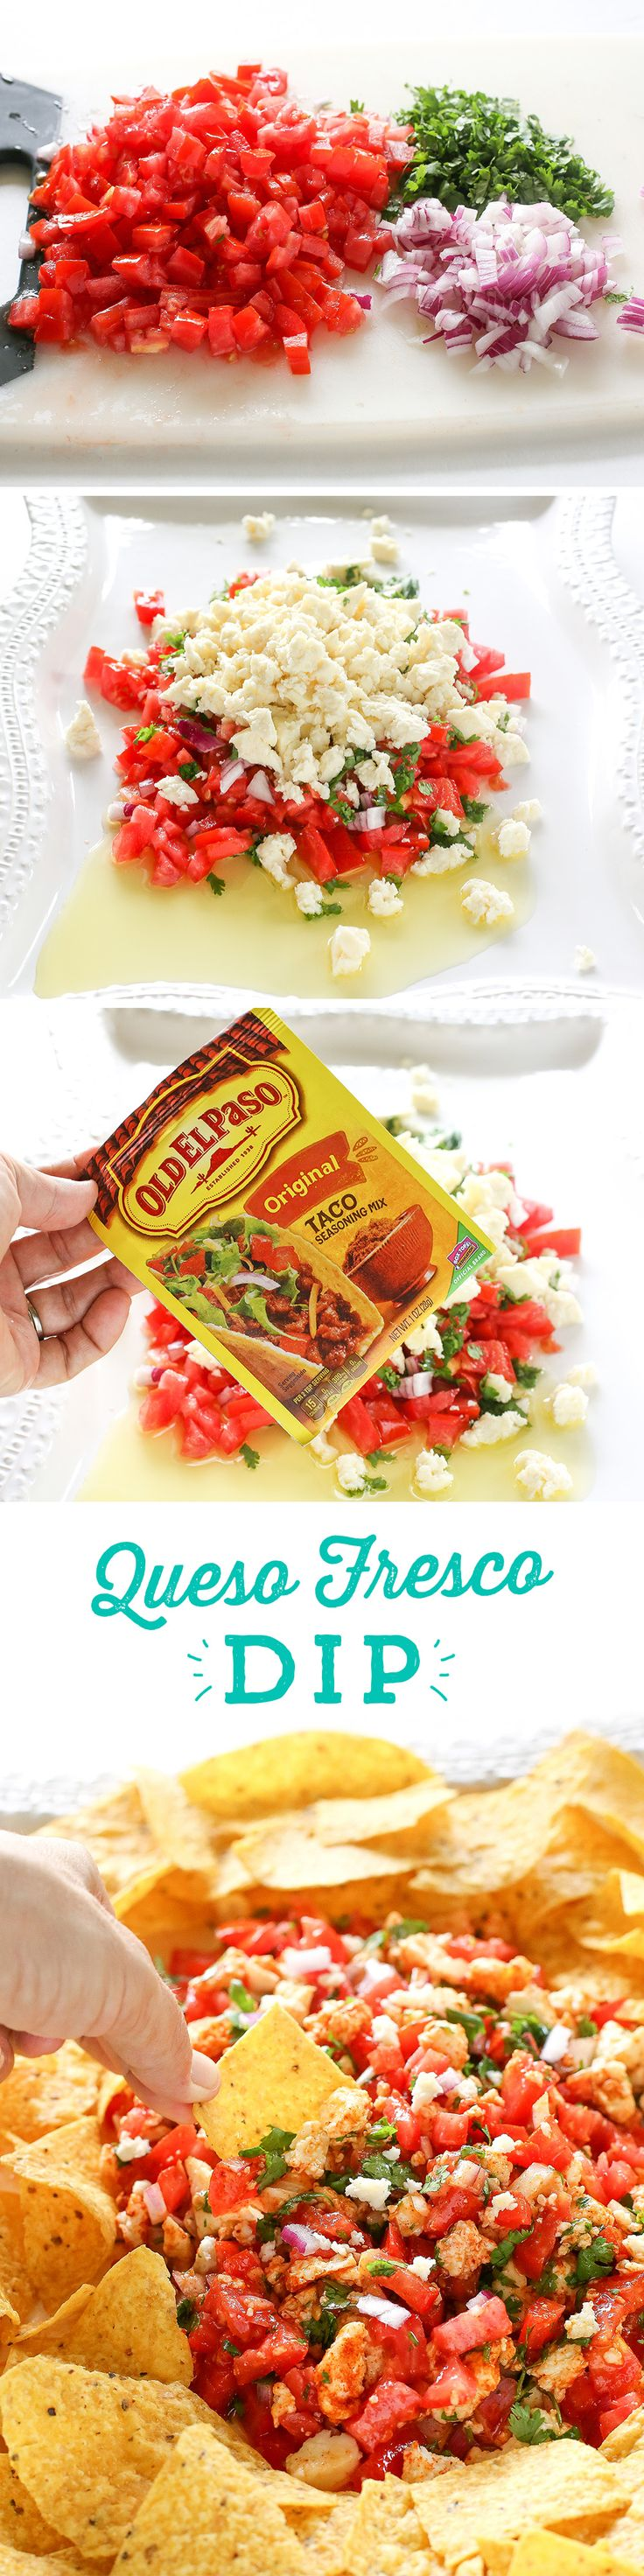 Looking for an easy snack idea? This Queso Fresco Dip from @girlwhoate is perfect! It has just a few ingredients, packs bright, fresh flavors, and comes together in just minutes!